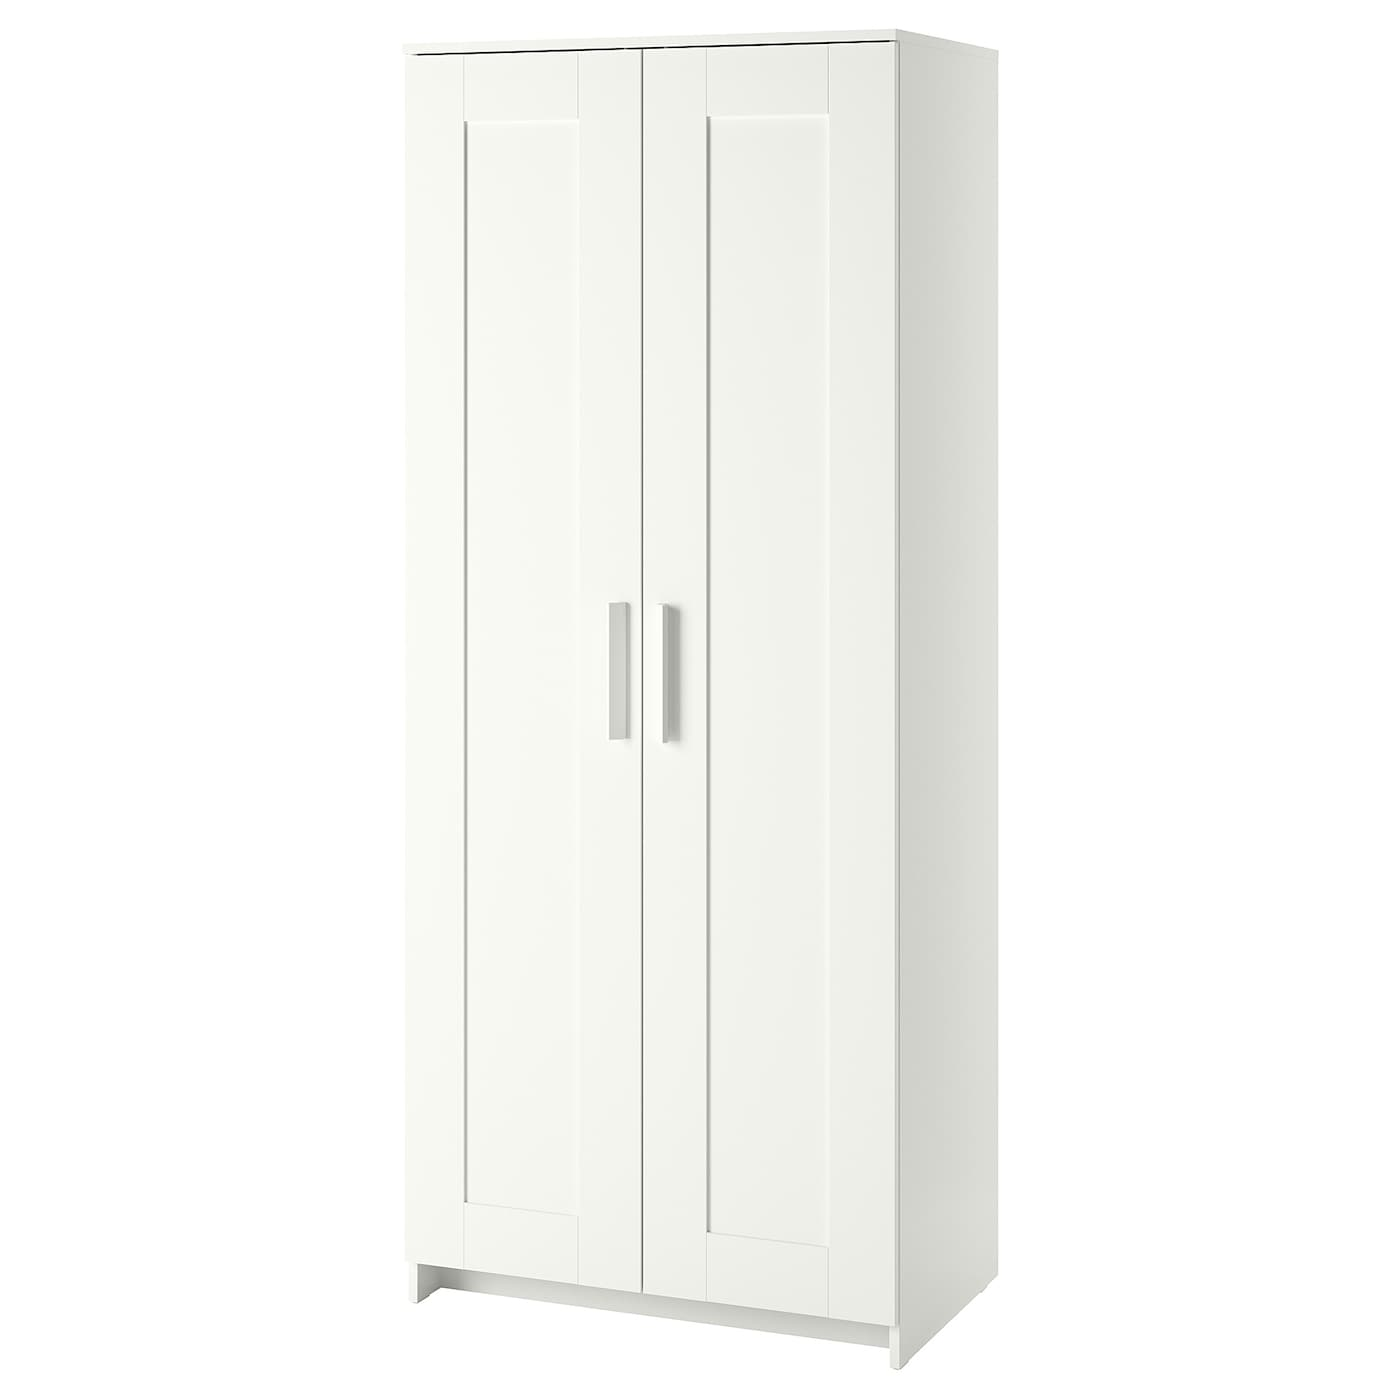 ikea brimnes wardrobe with 2 doors perfect for folded as well as long and short hanging - White Wardrobe